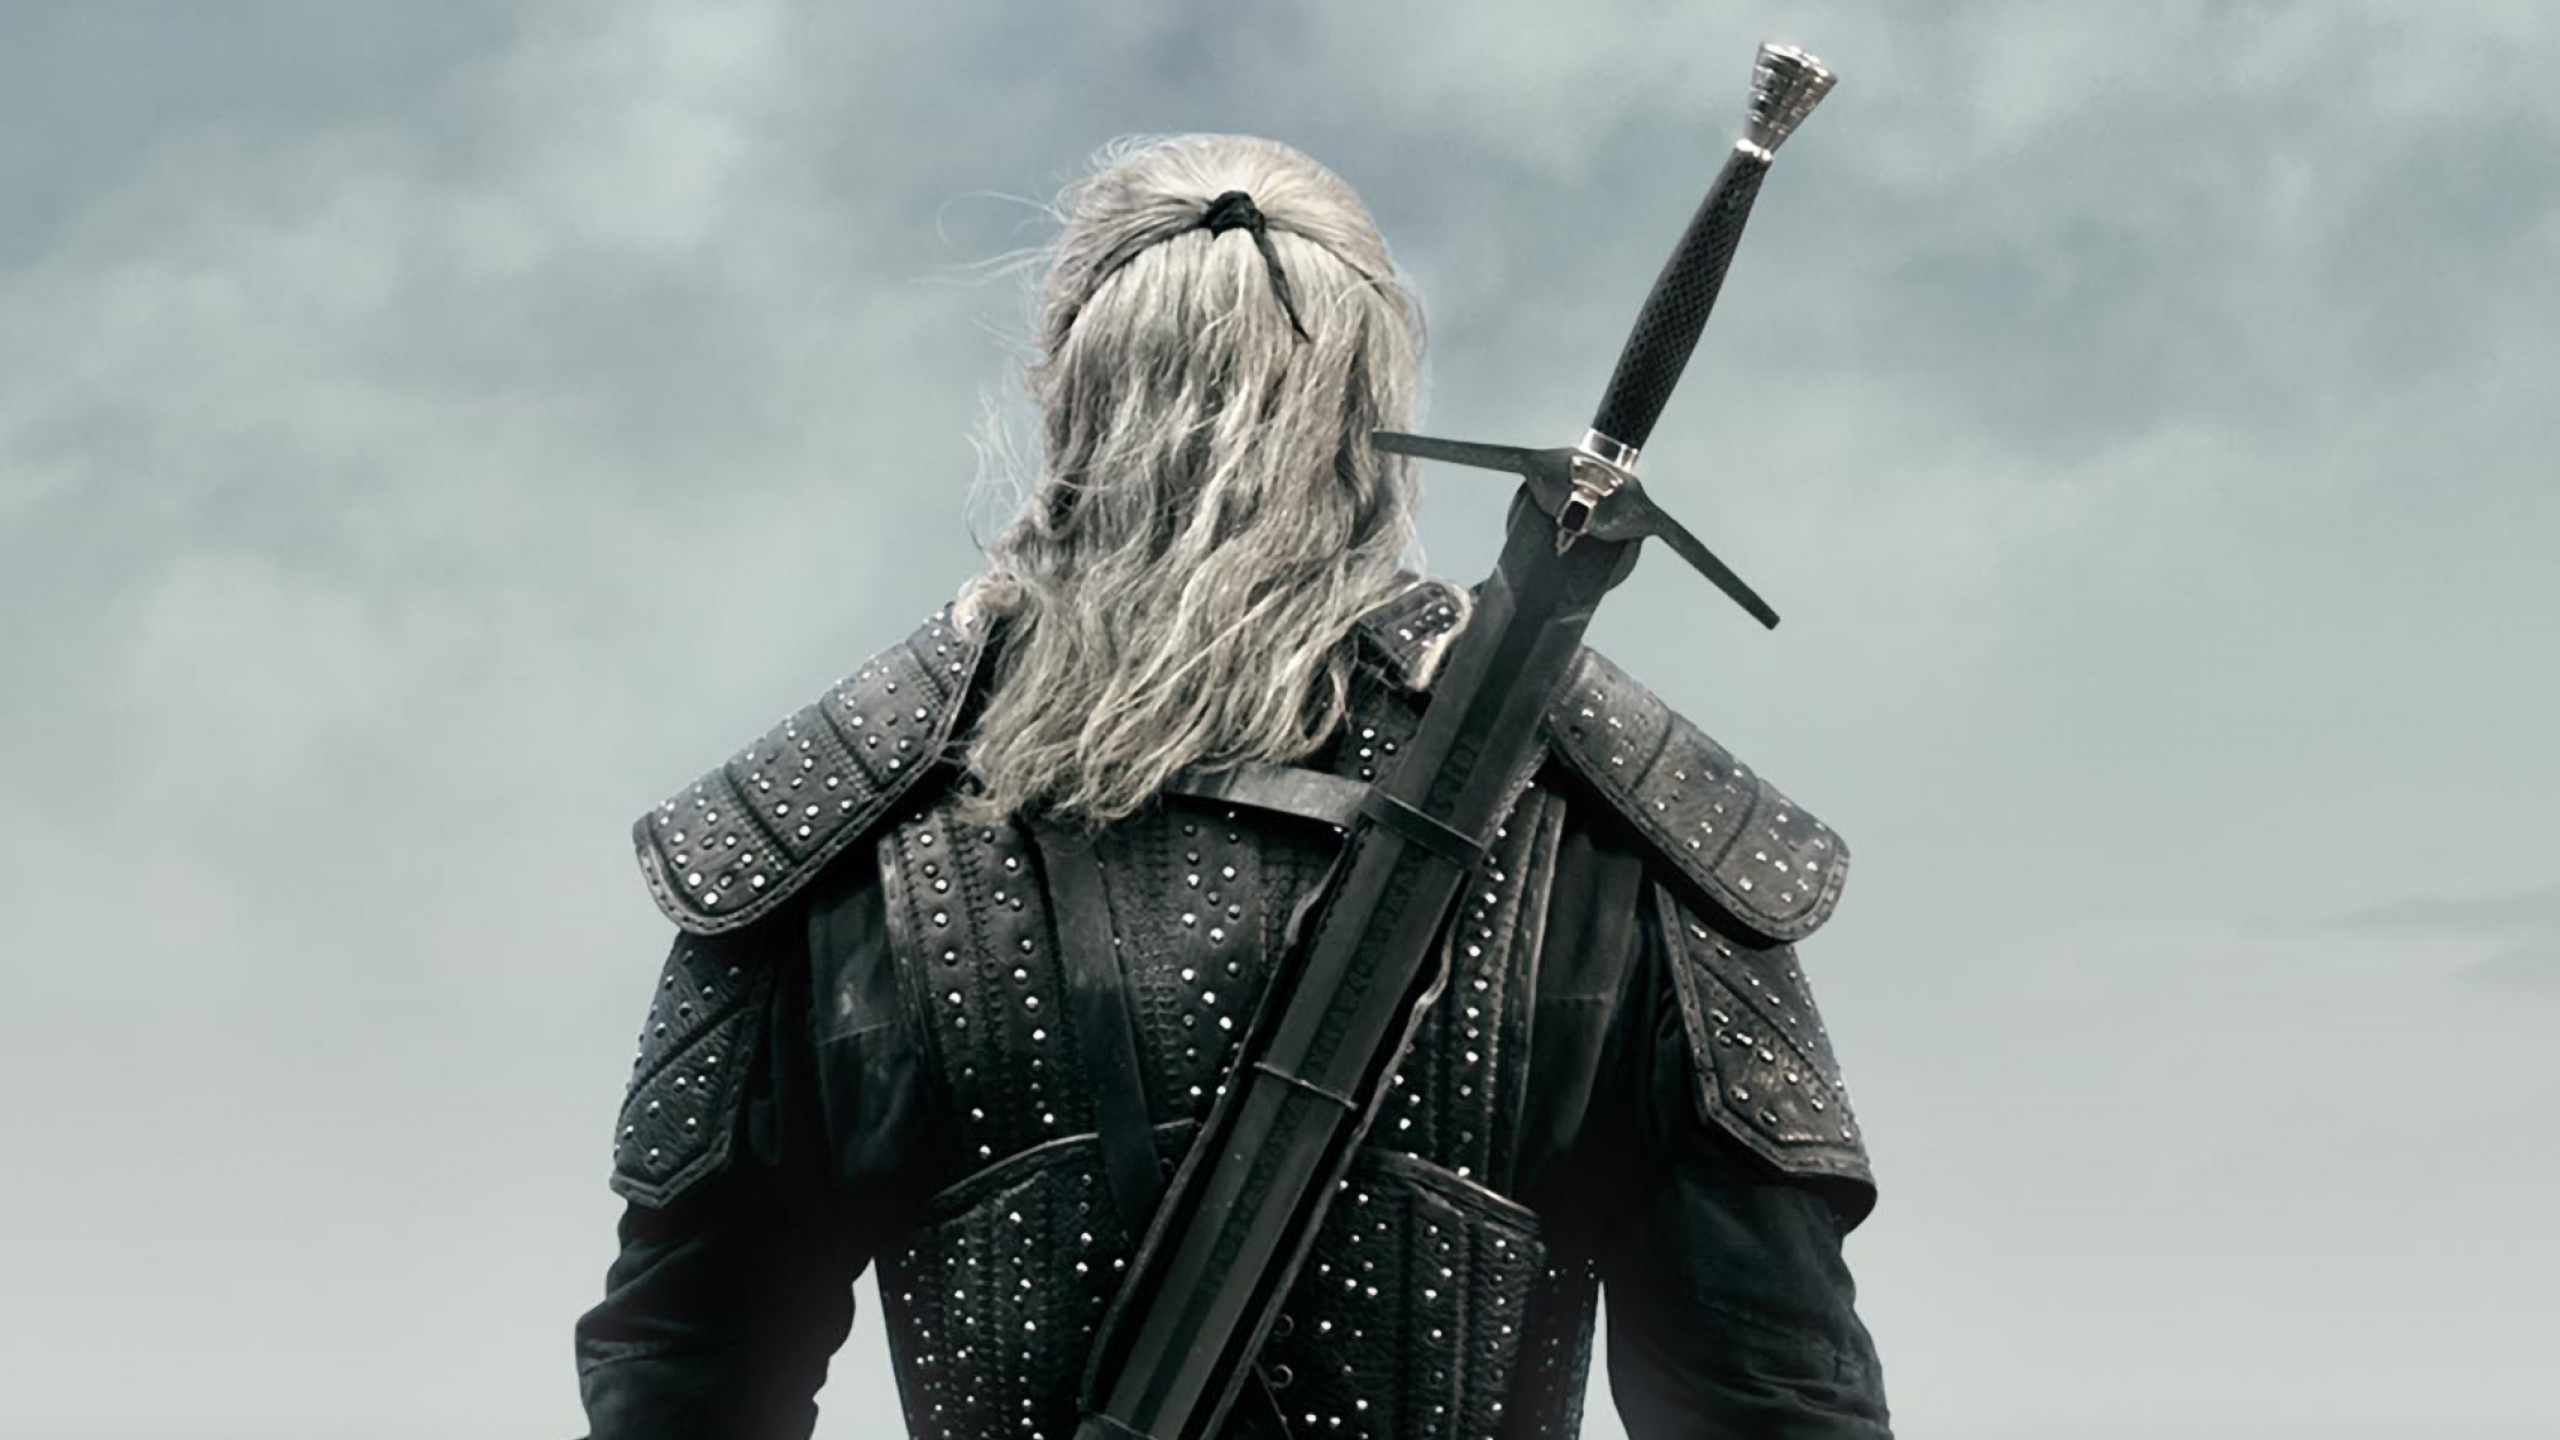 2560x1440 The Witcher Netflix Poster 1440p Resolution Wallpaper Hd Tv Series 4k Wallpapers Images Photos And Background